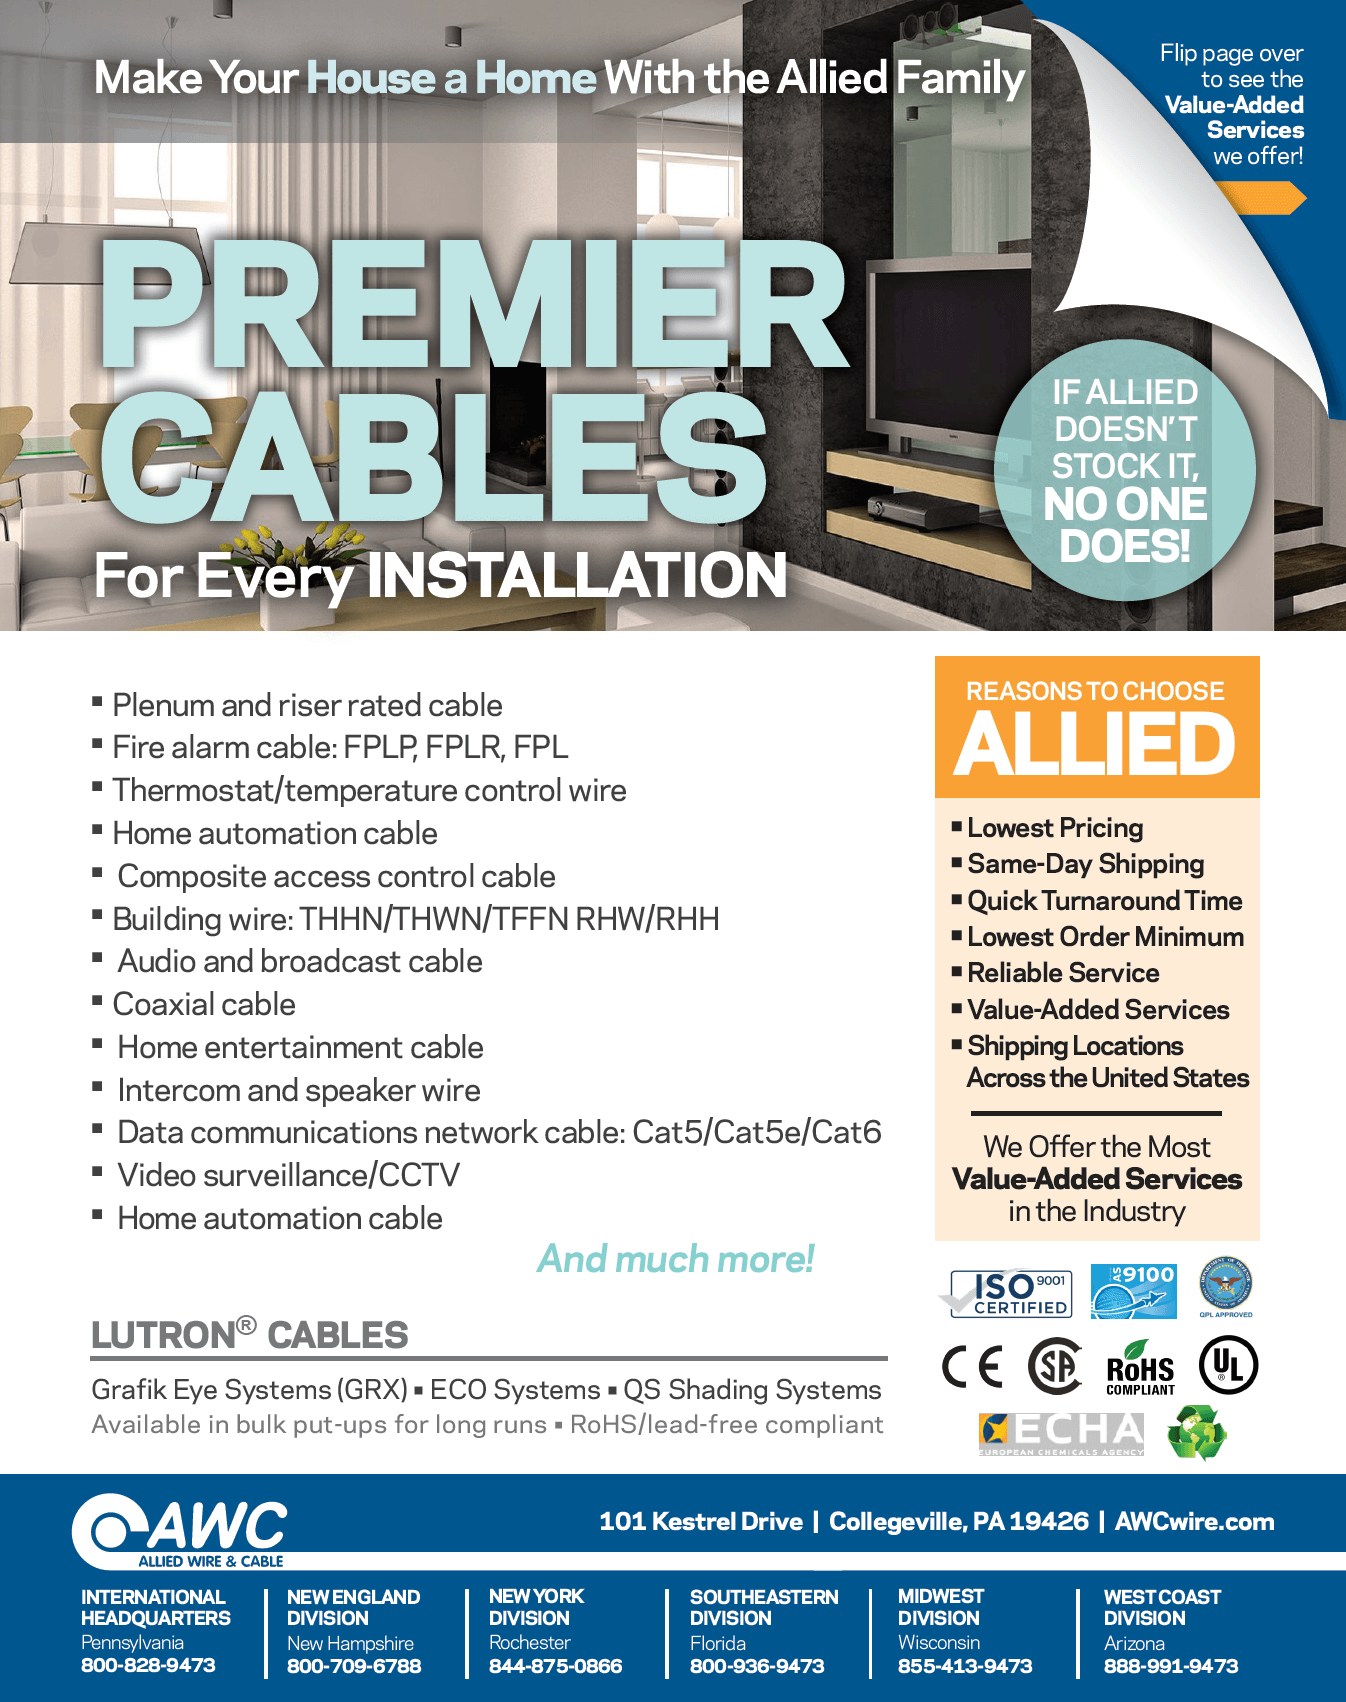 Premier Cables Line Card from Allied Wire & Cable